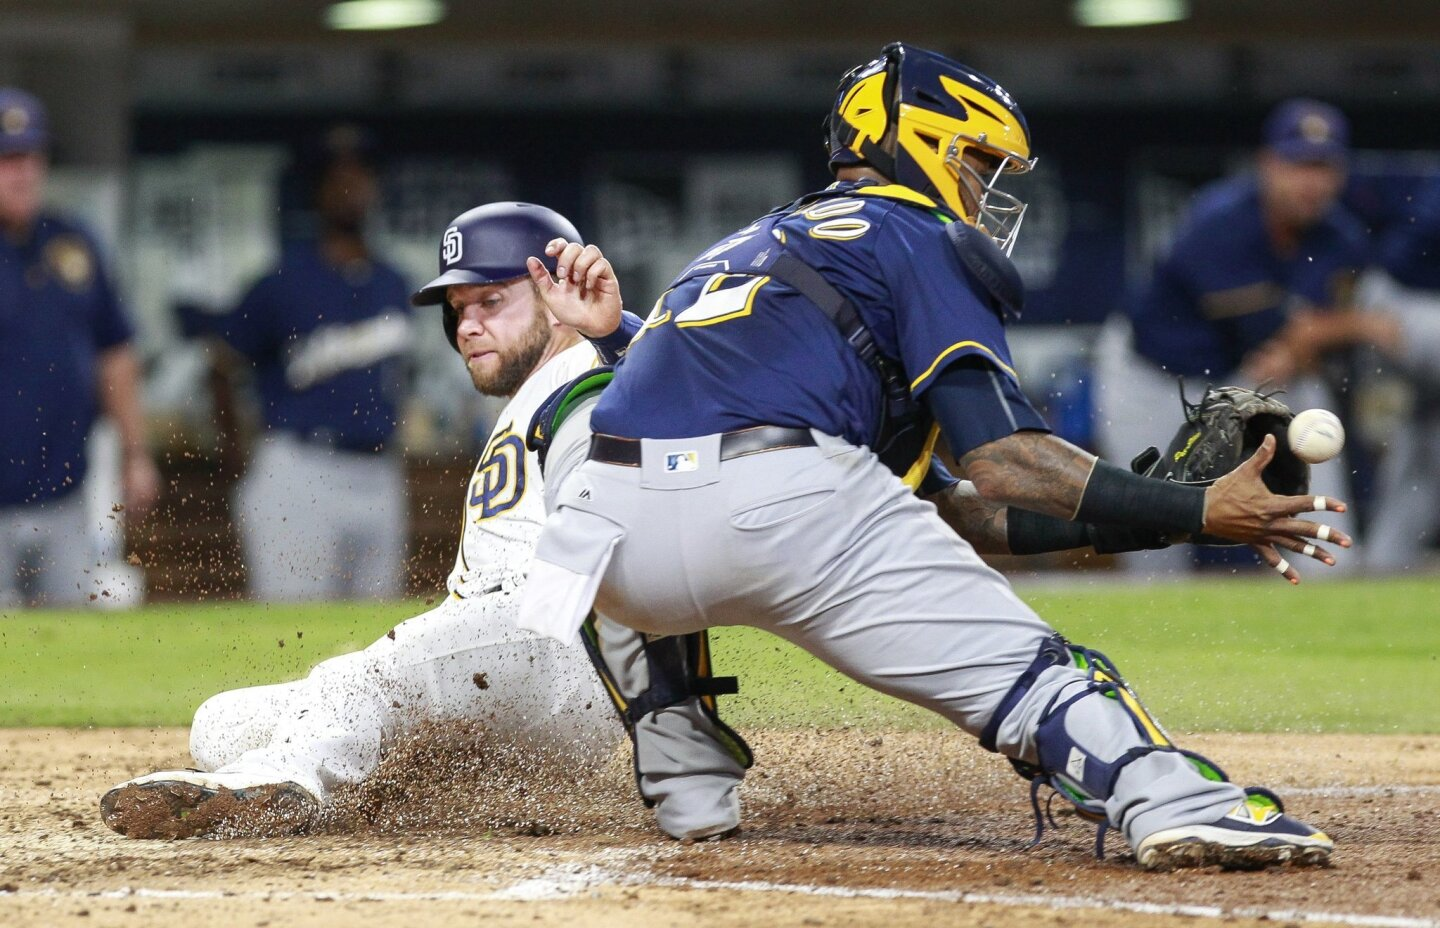 Padres vs. Brewers 8/1/16